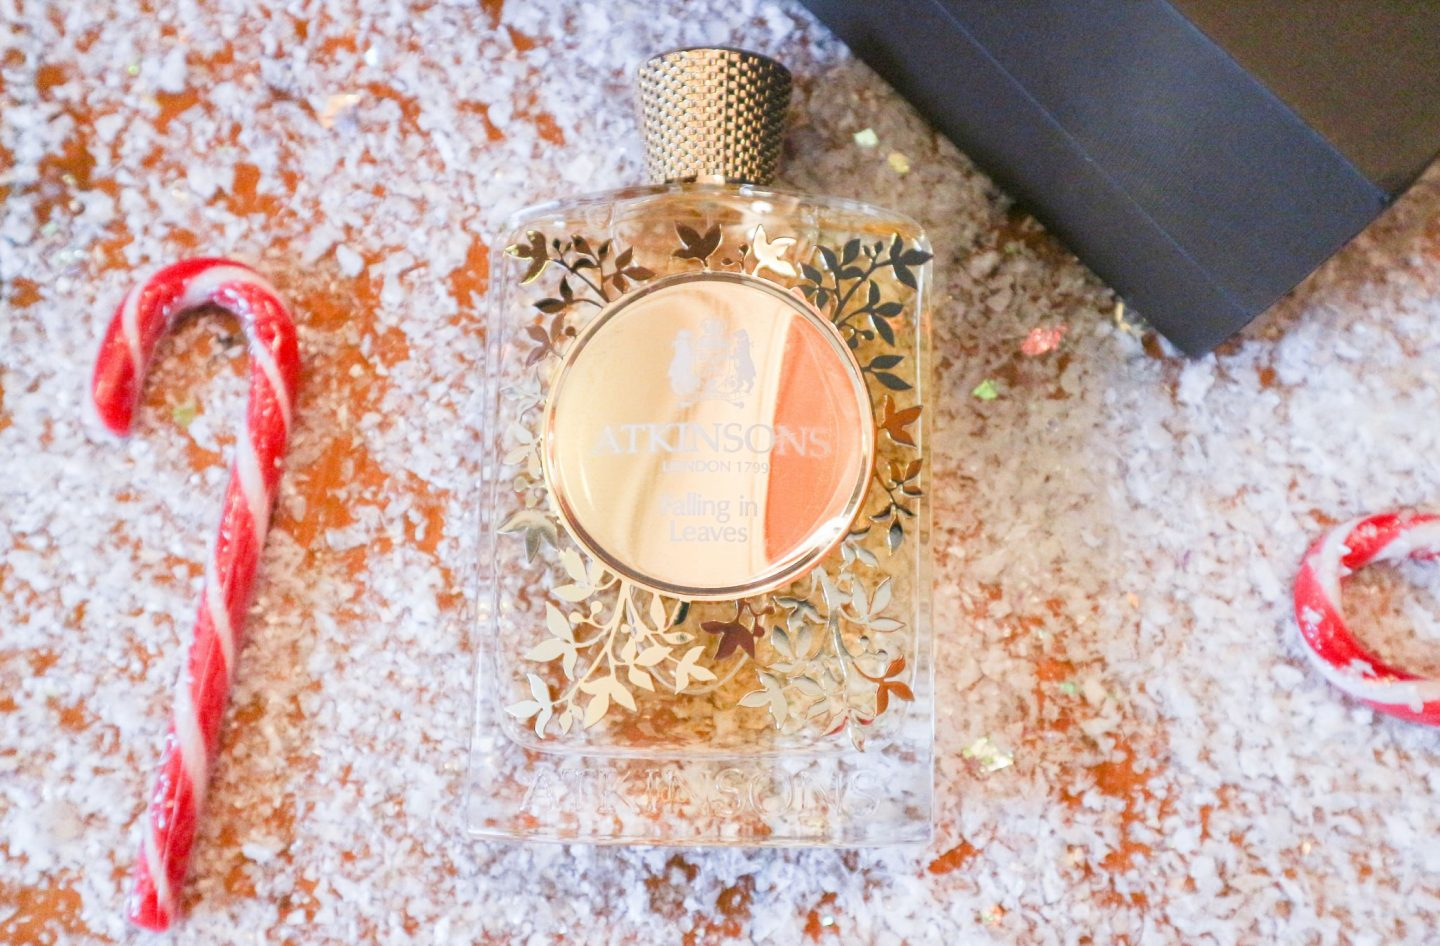 Atkinsons Falling in Leaves Limited Edition EDT